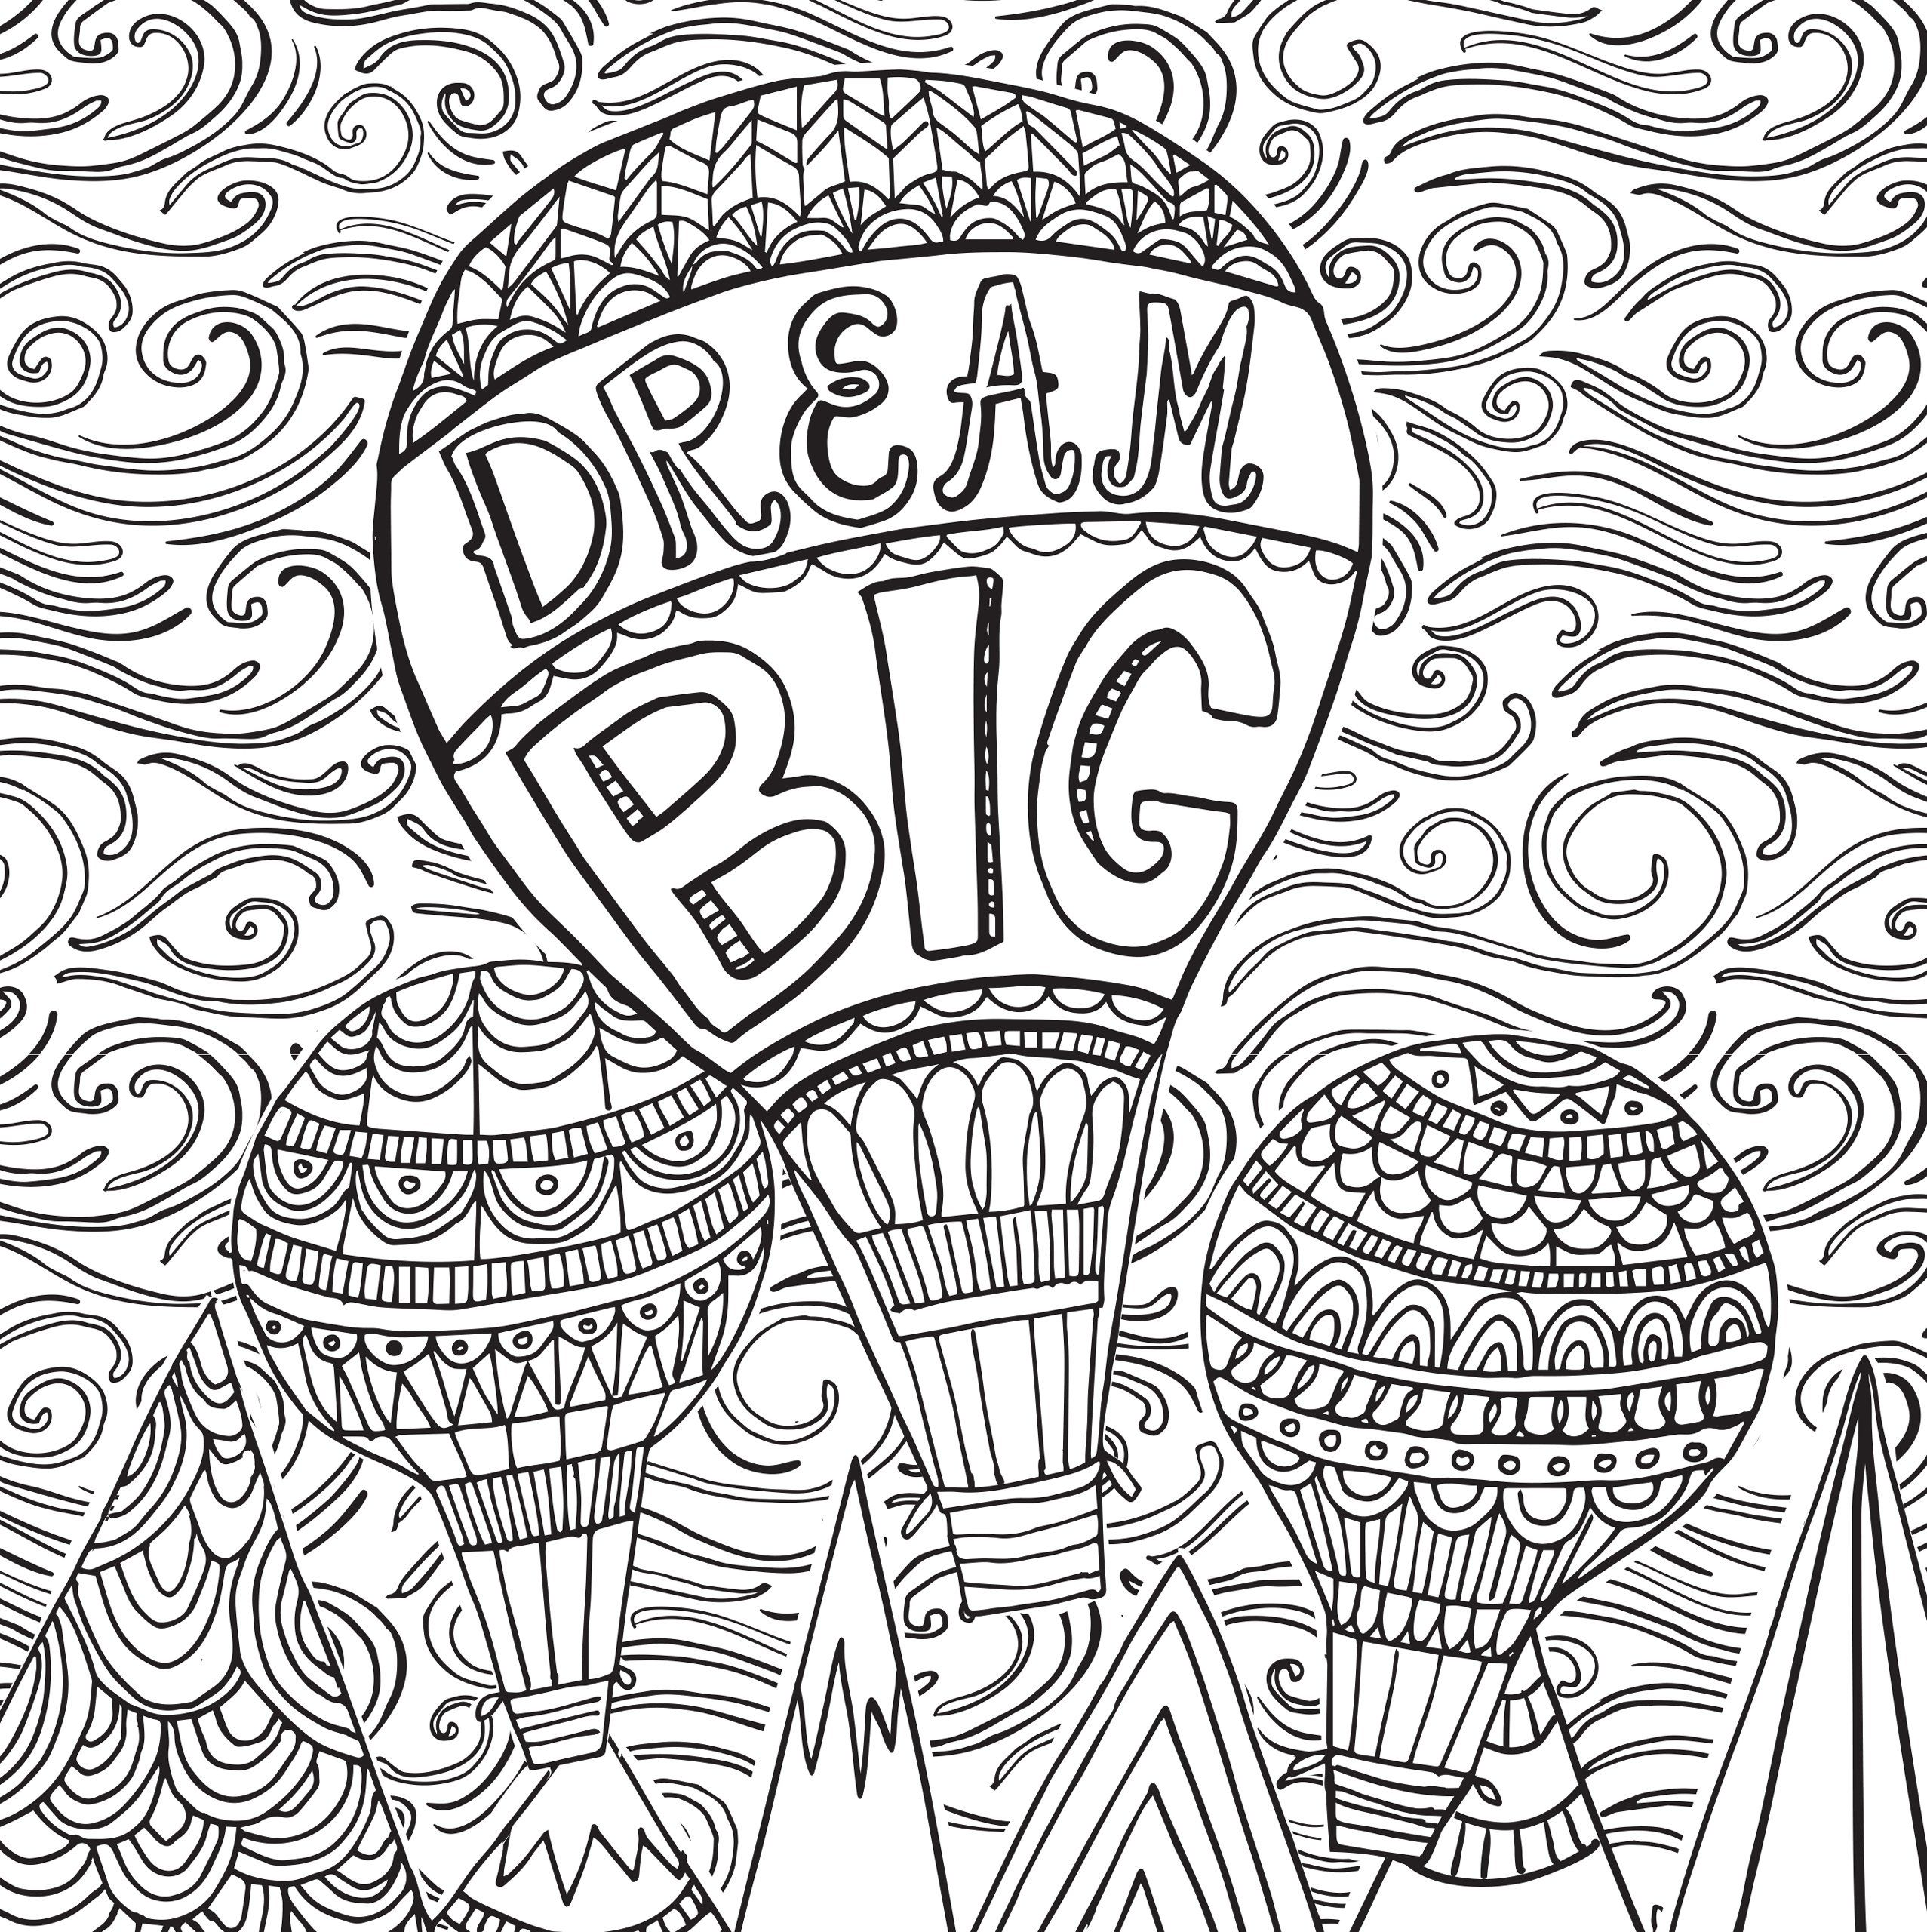 Inspirational Quotes Coloring Pages For Adults : Free coloring pages for adults inspirational